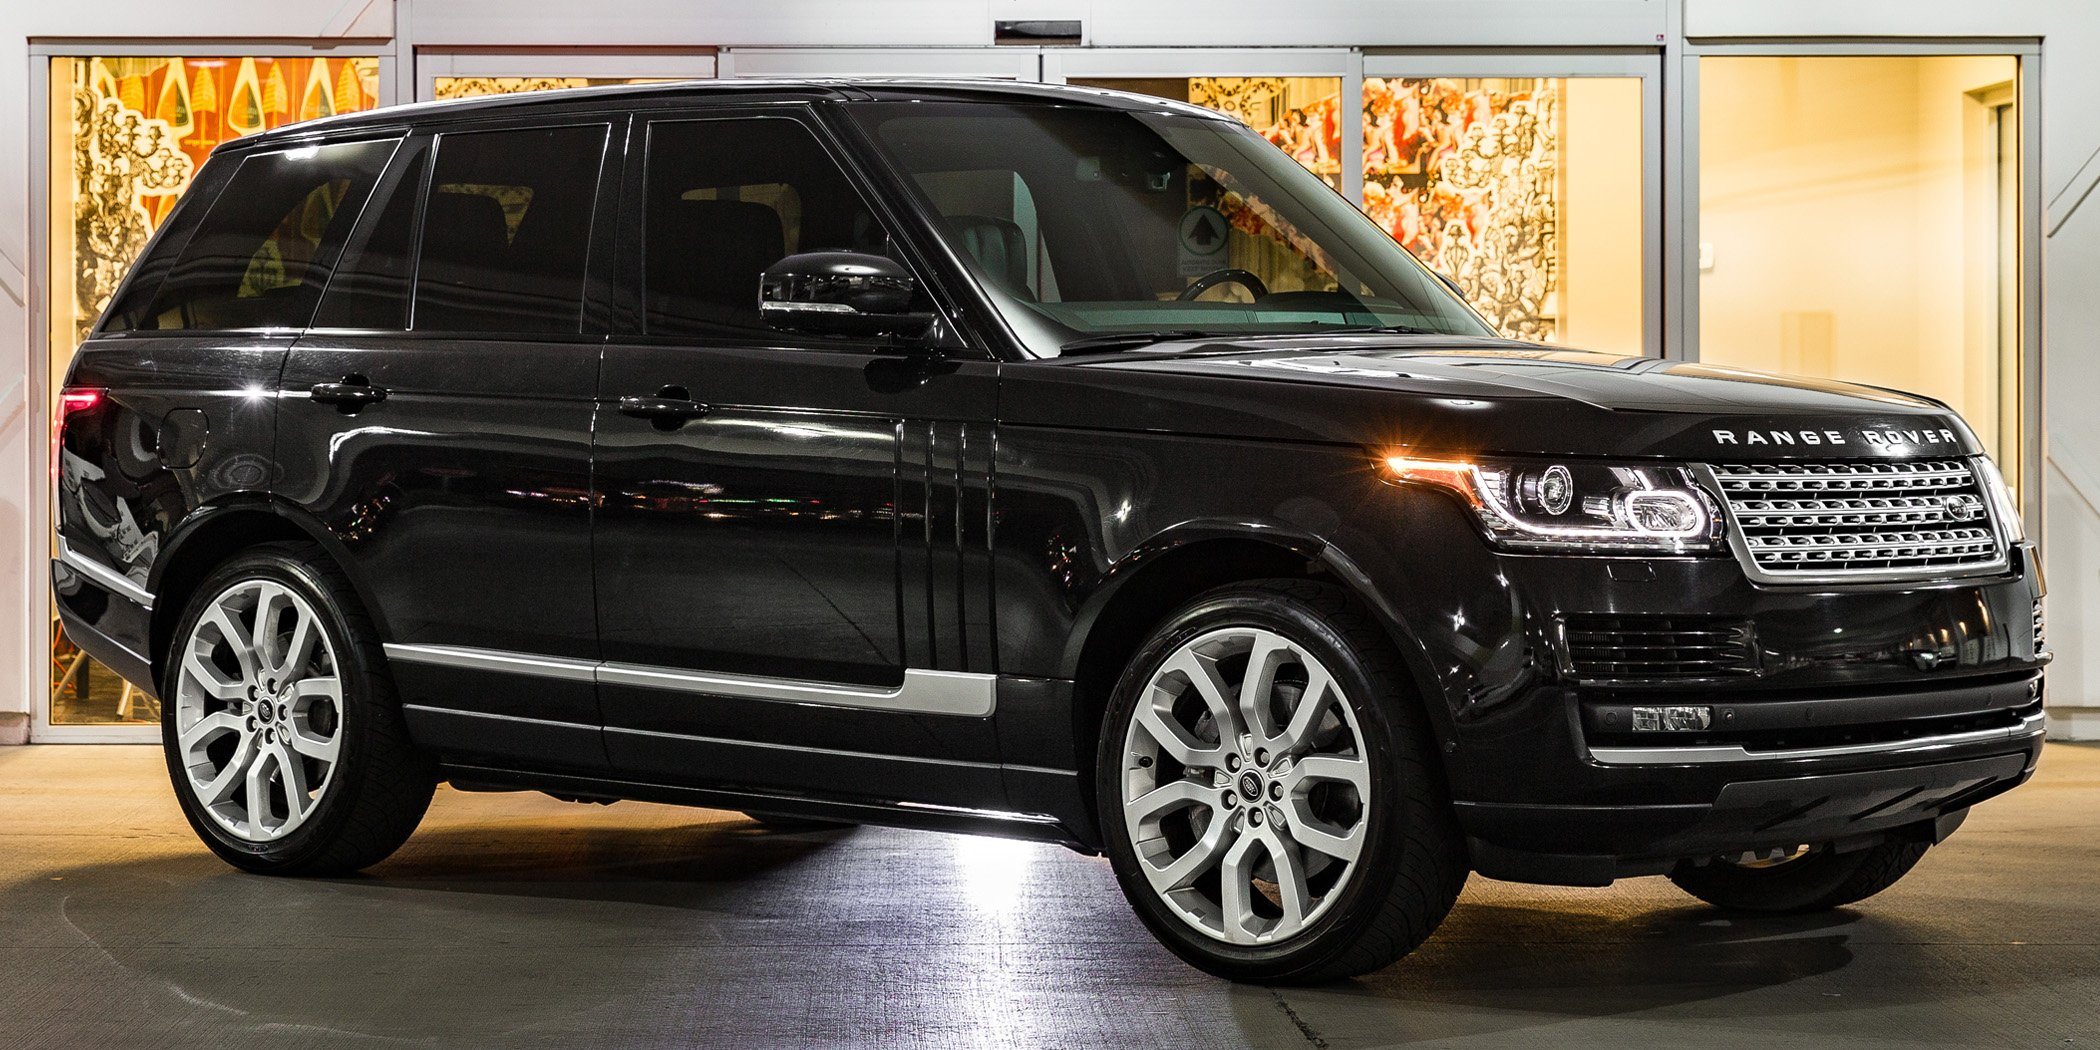 black Range Rover Supercharged